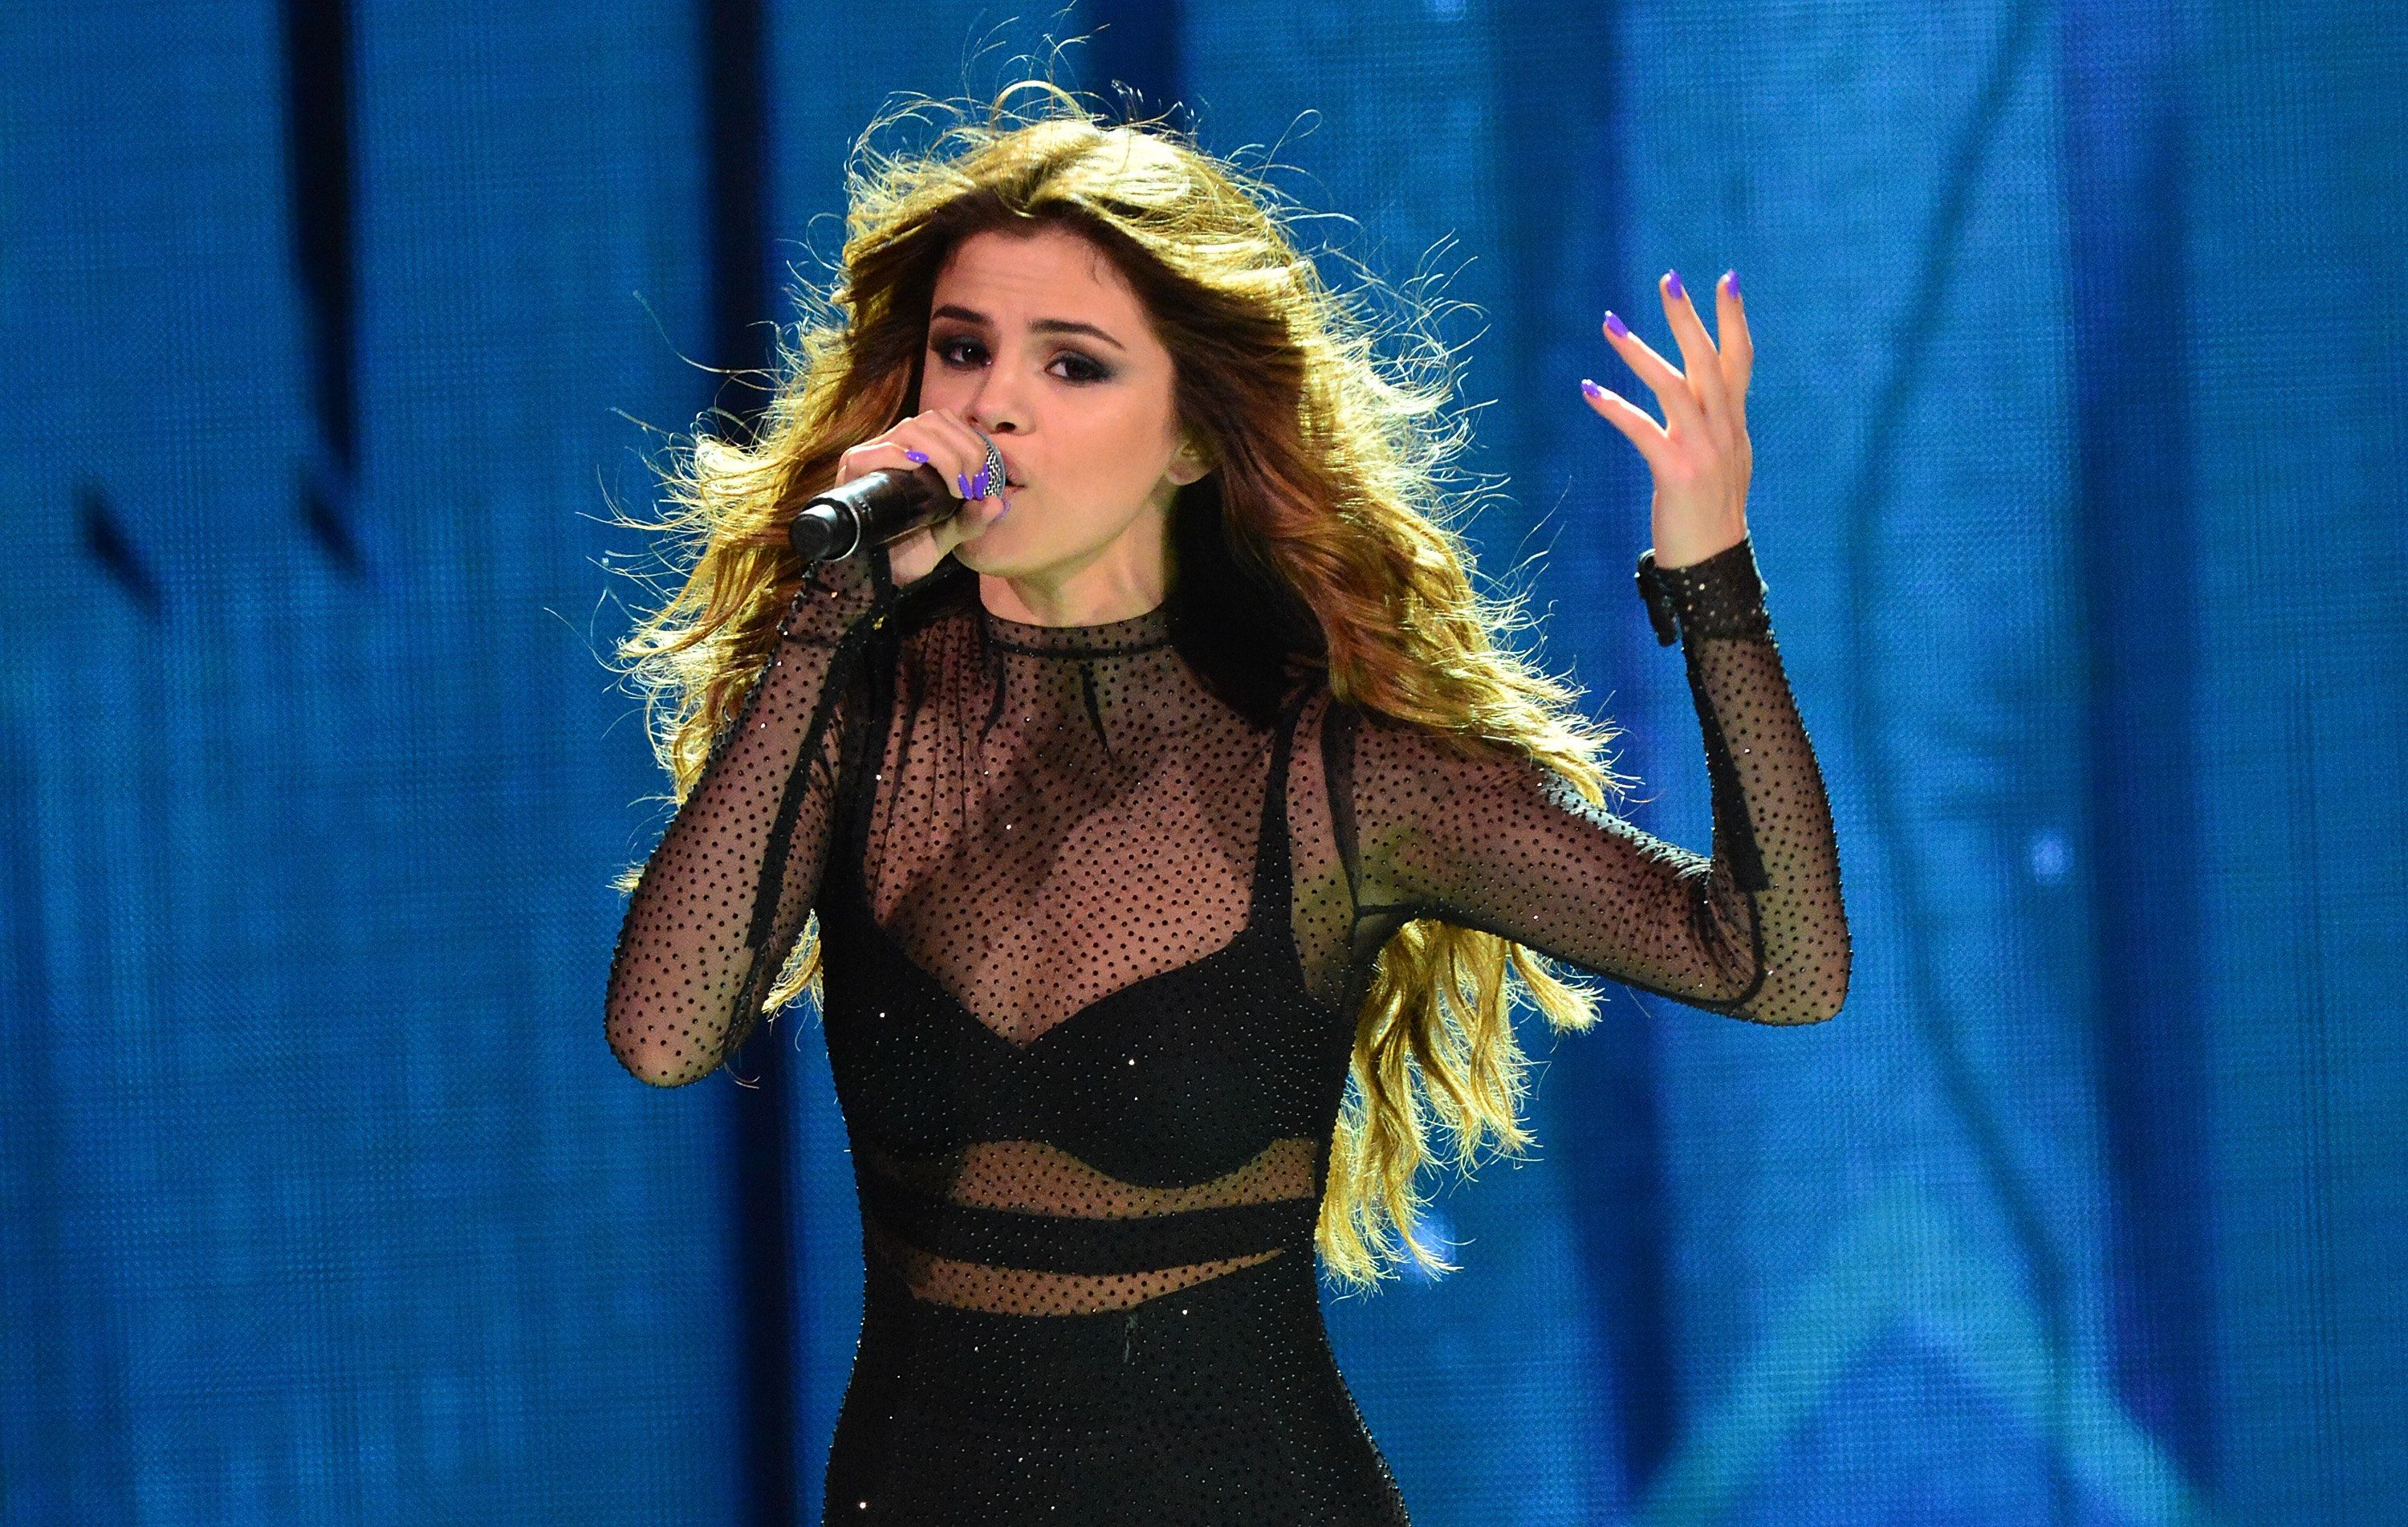 Singer Selena Gomez performs at The Prudential Center in Newark, New Jersey, on June 2, 2016.